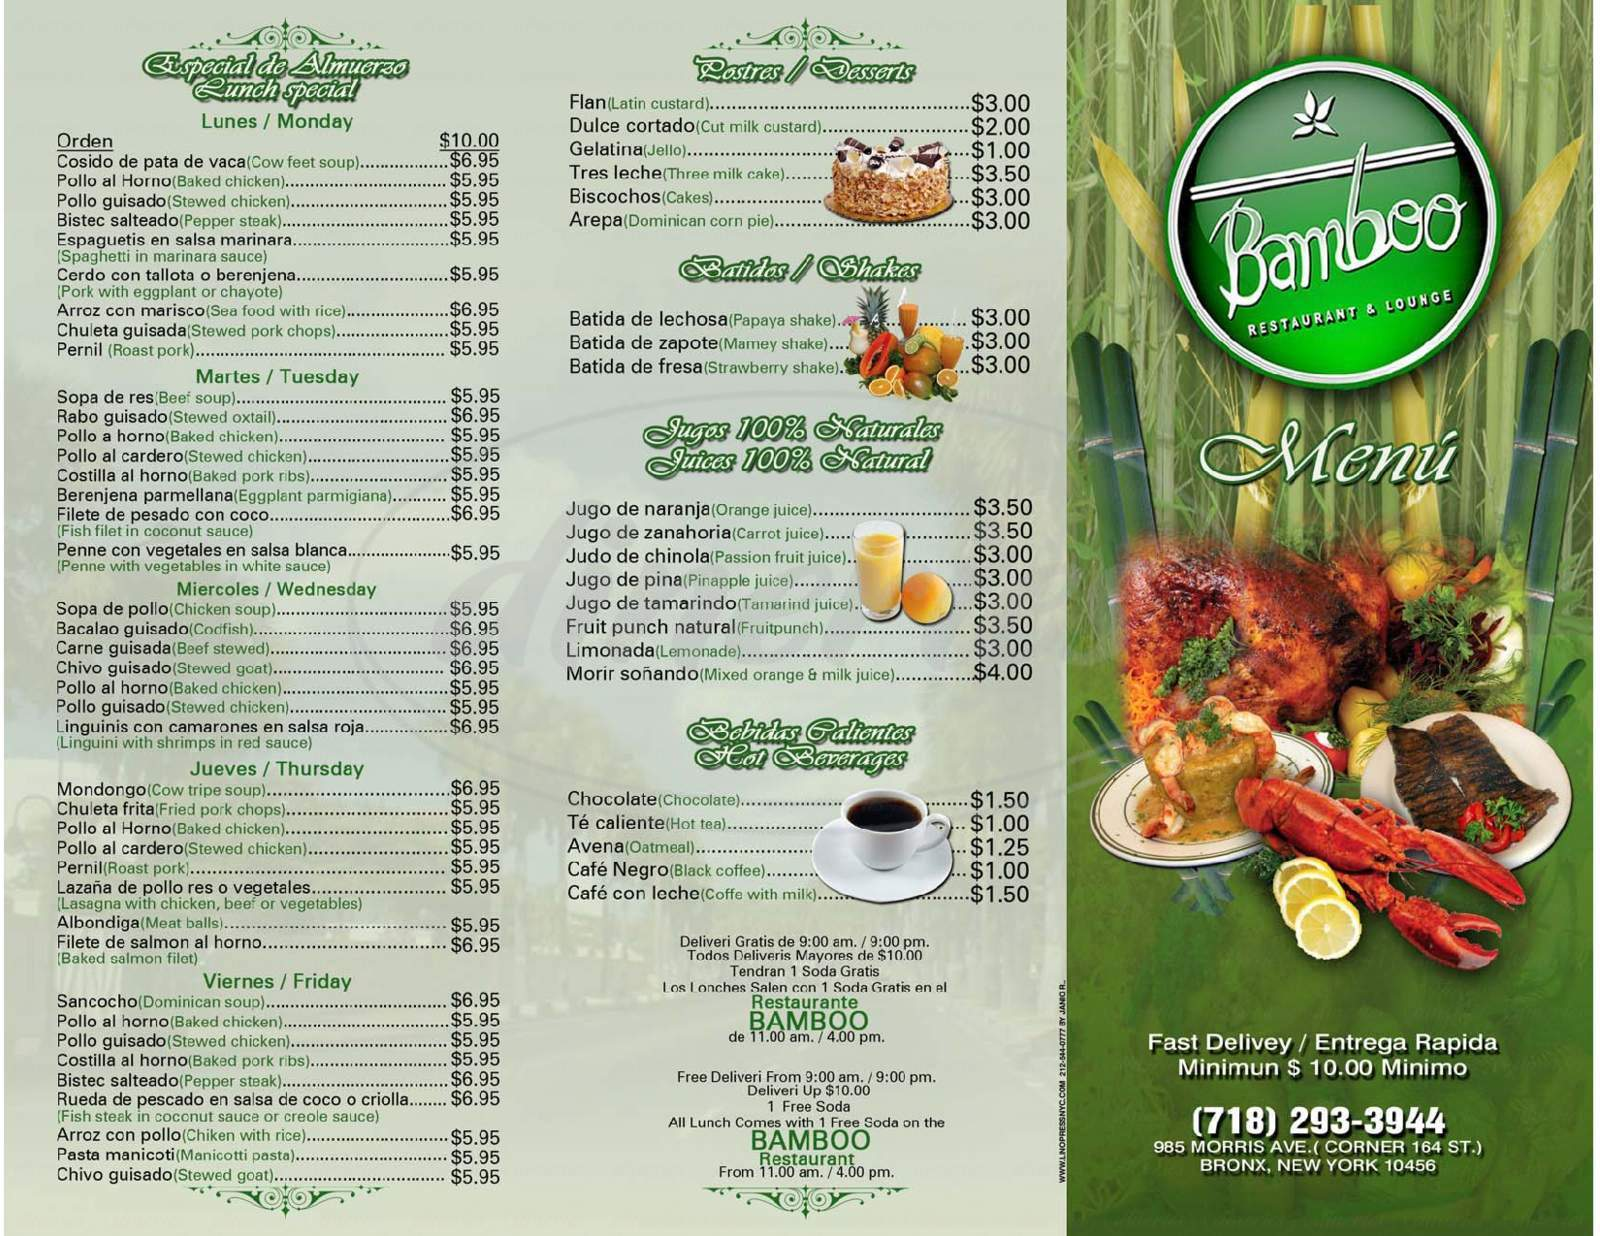 menu for The Bamboo Restaurant